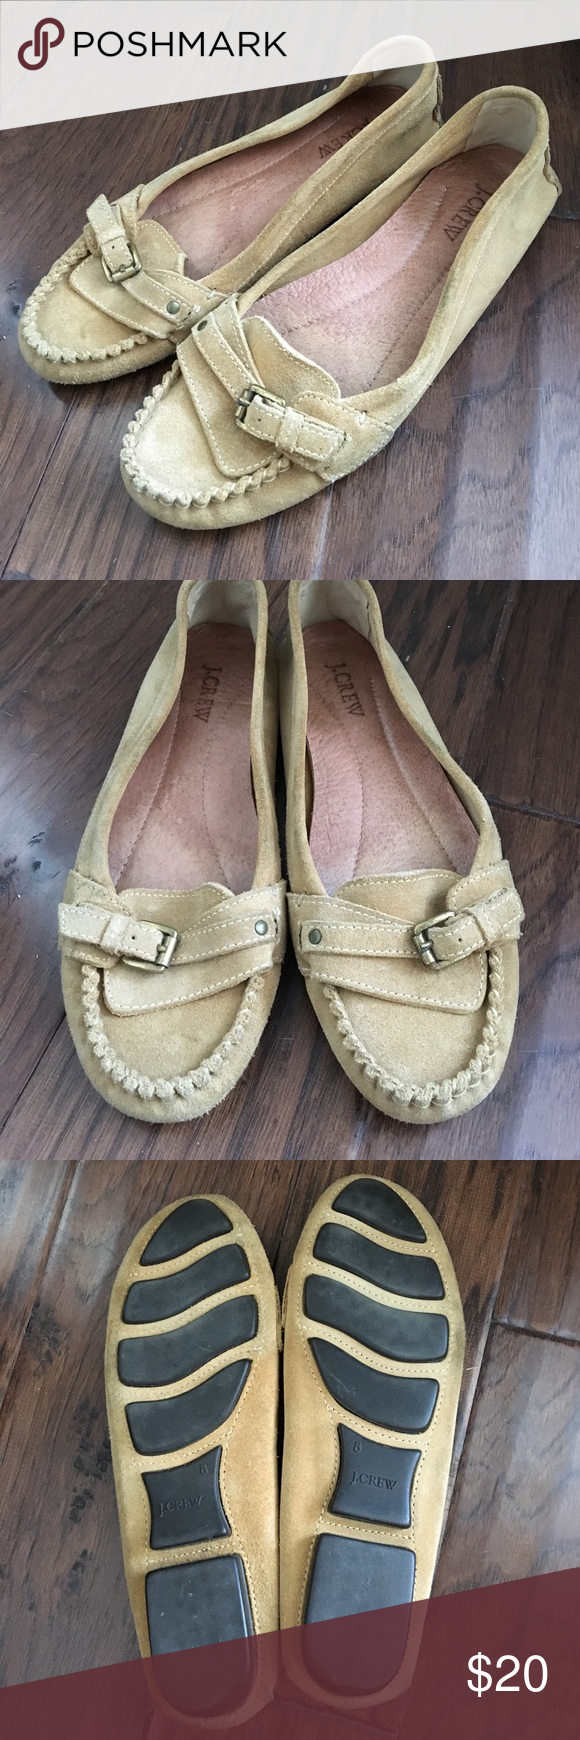 J. Crew Women's Flats In great condition! J. Crew Shoes Flats & Loafers